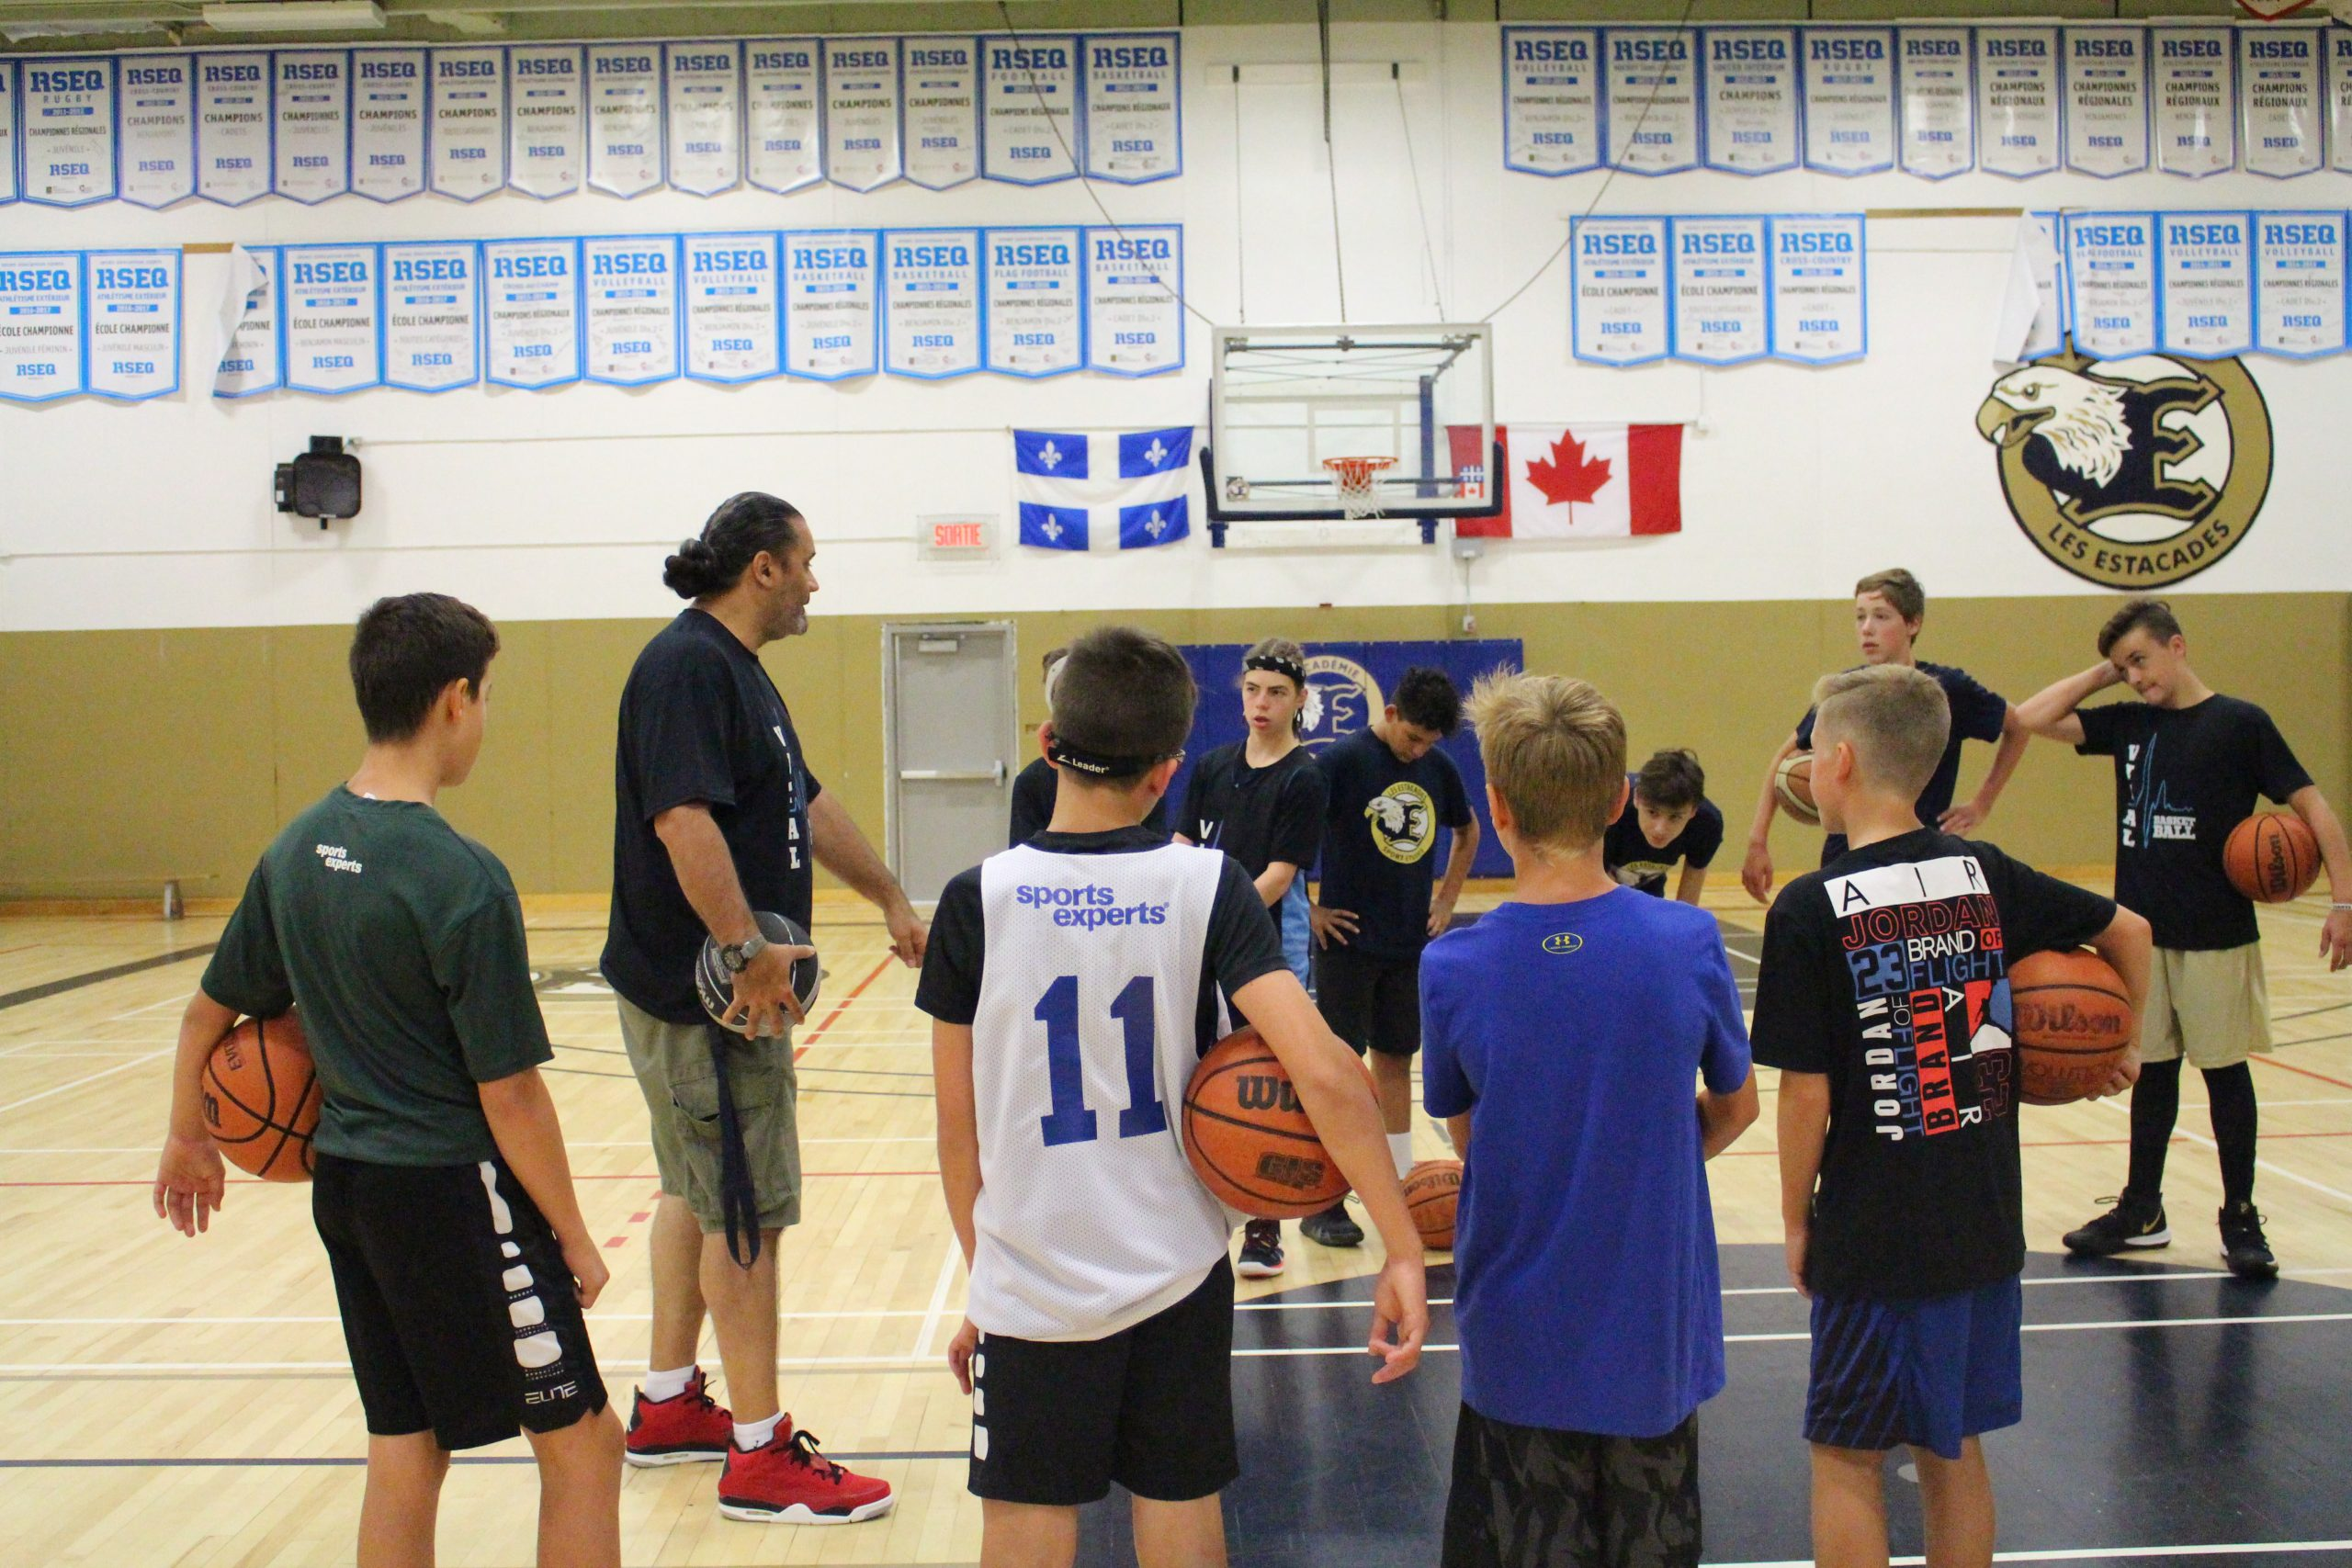 Camp basketball VITAL 2019 - 30